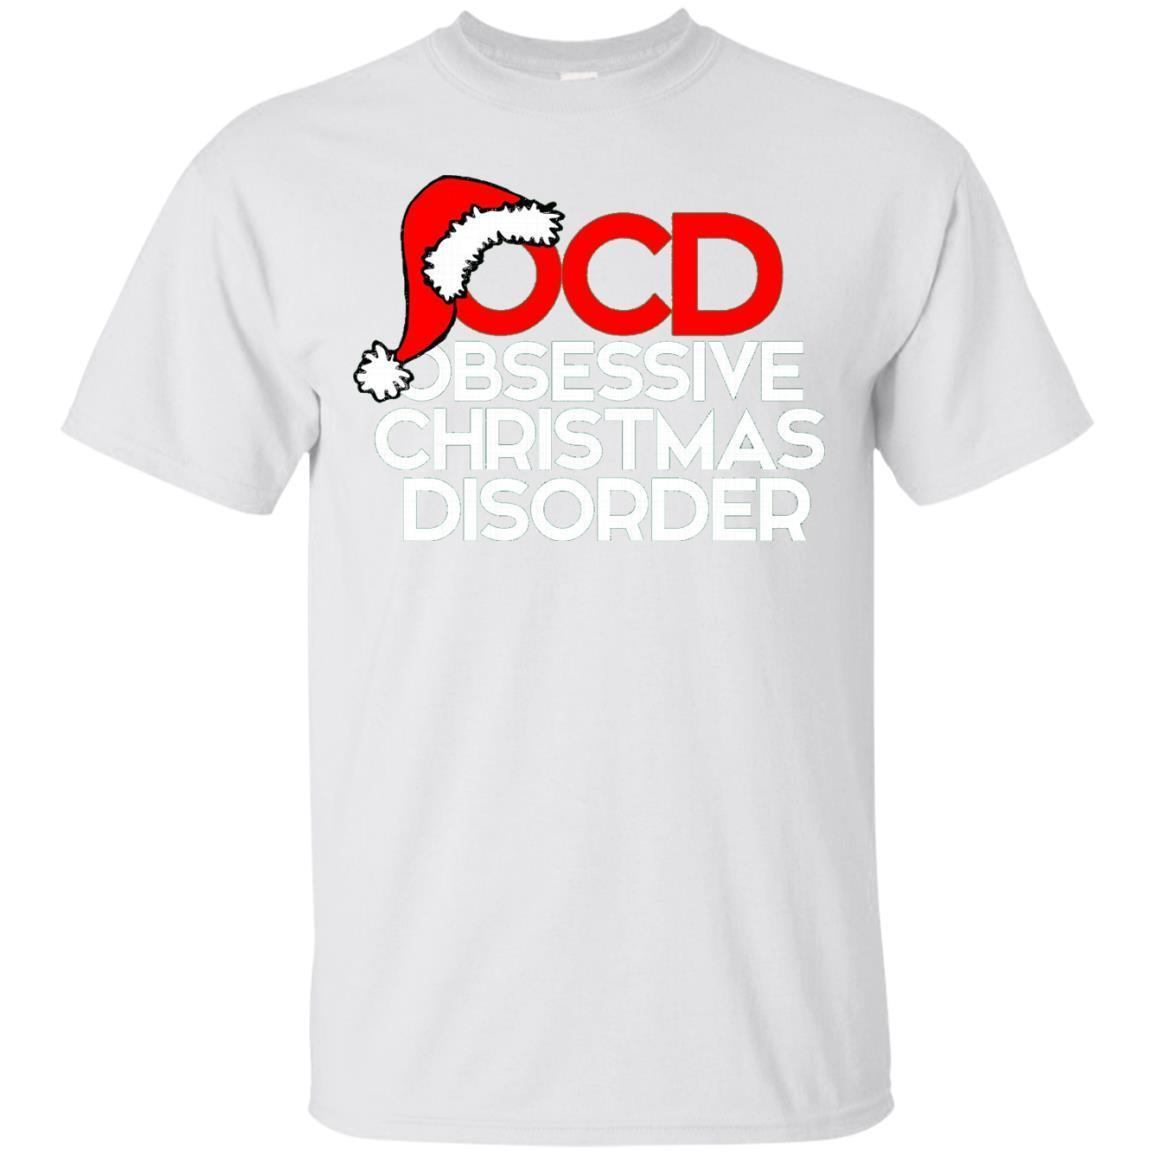 OCD Obsessive Christmas Disorder shirt xmas party t-shirt – T-Shirt